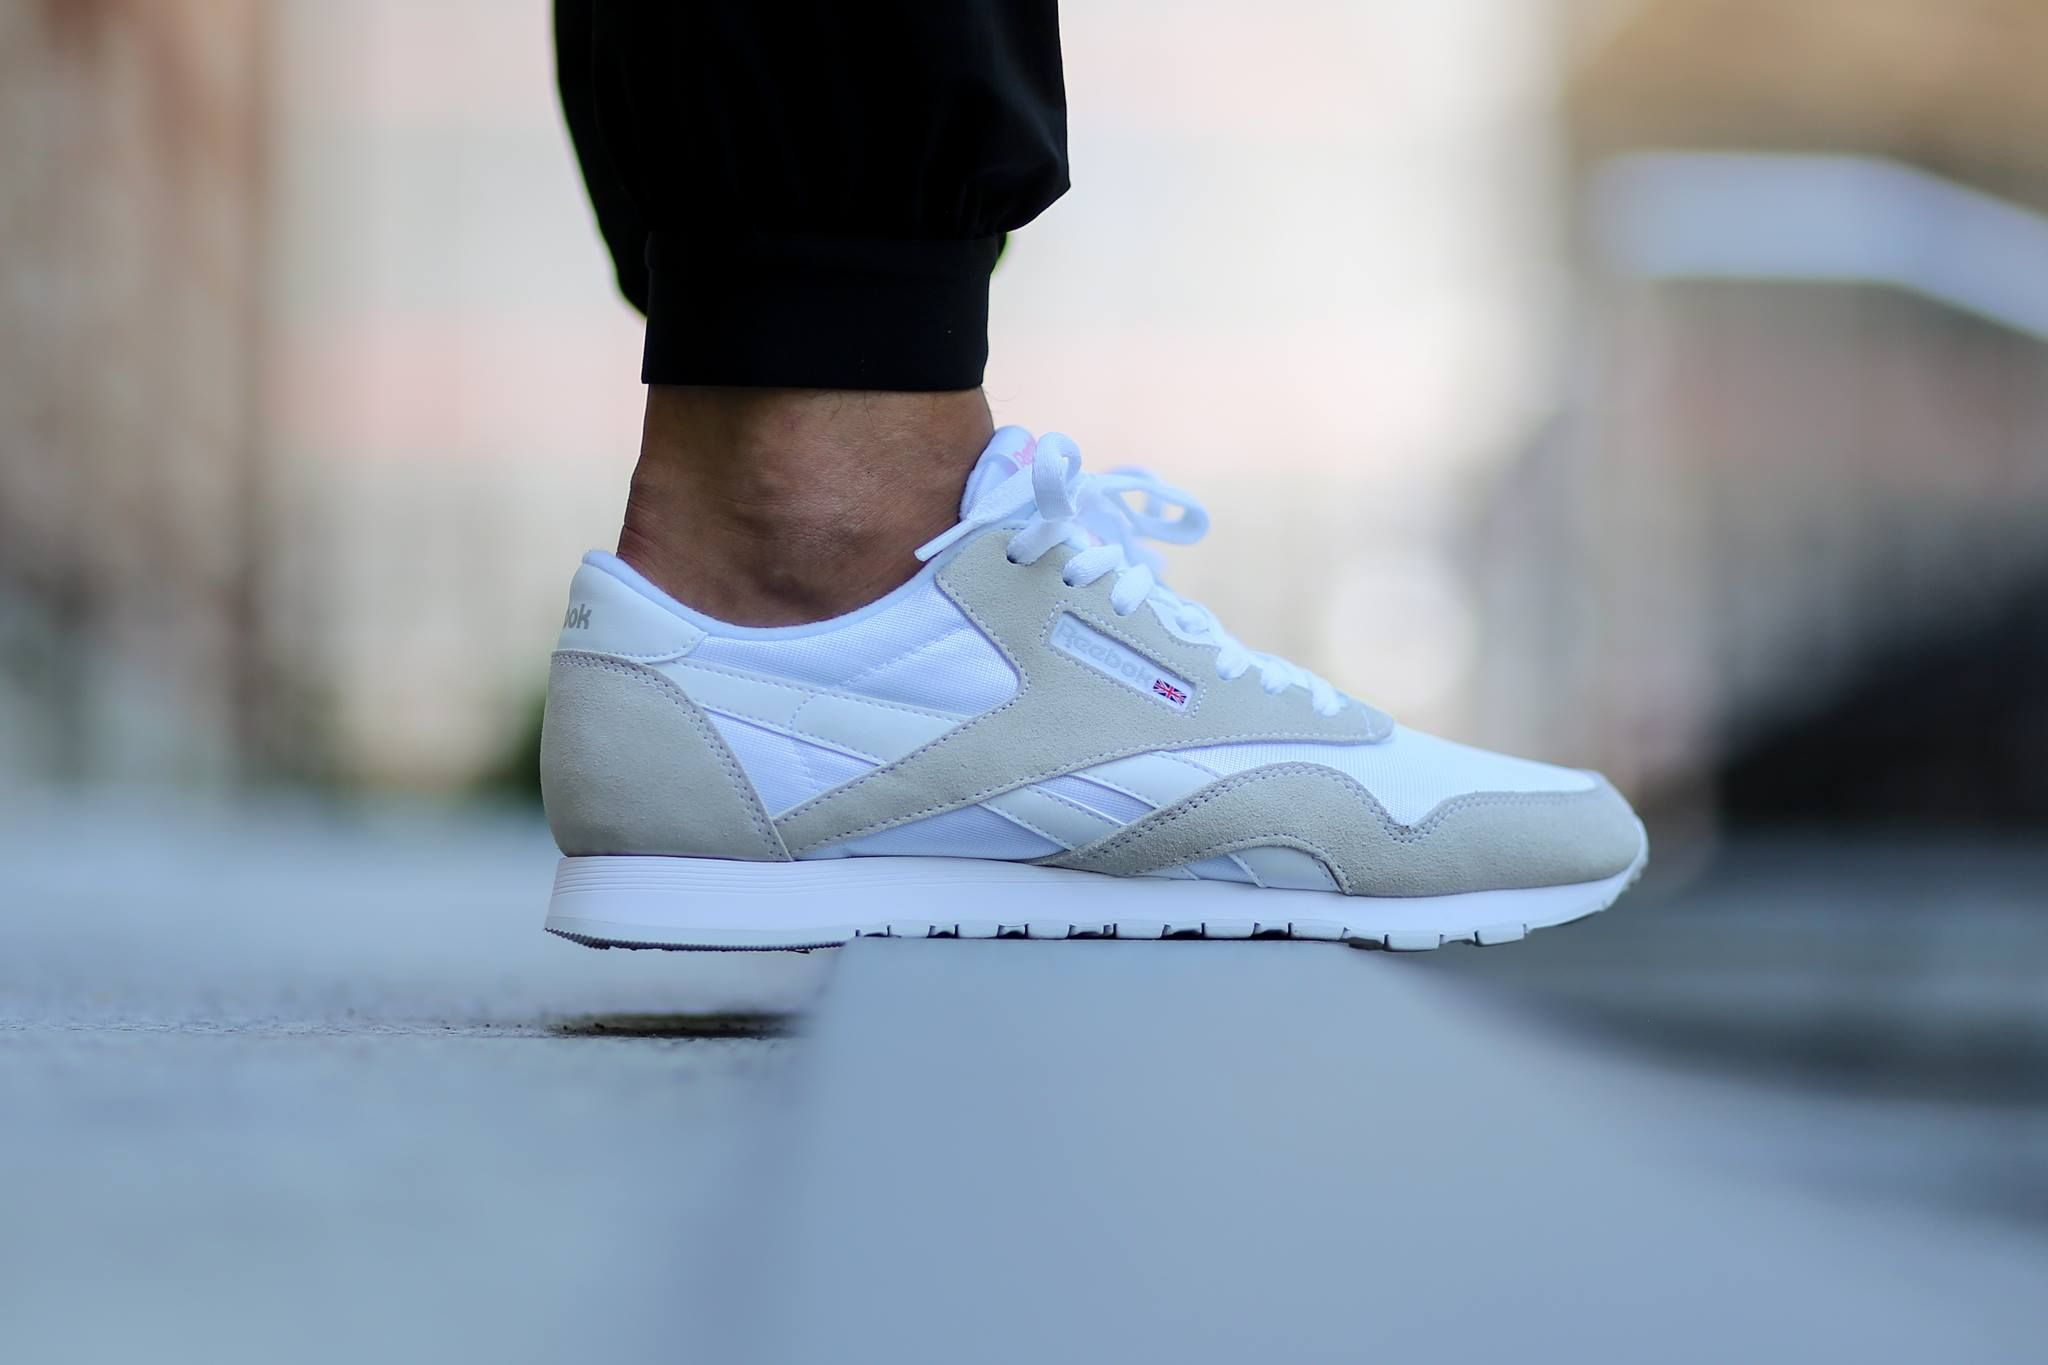 9b7b12589f4177 The Reebok Classic Nylon edition is offered in a new colorway of White with Light  Grey for its latest iteration.